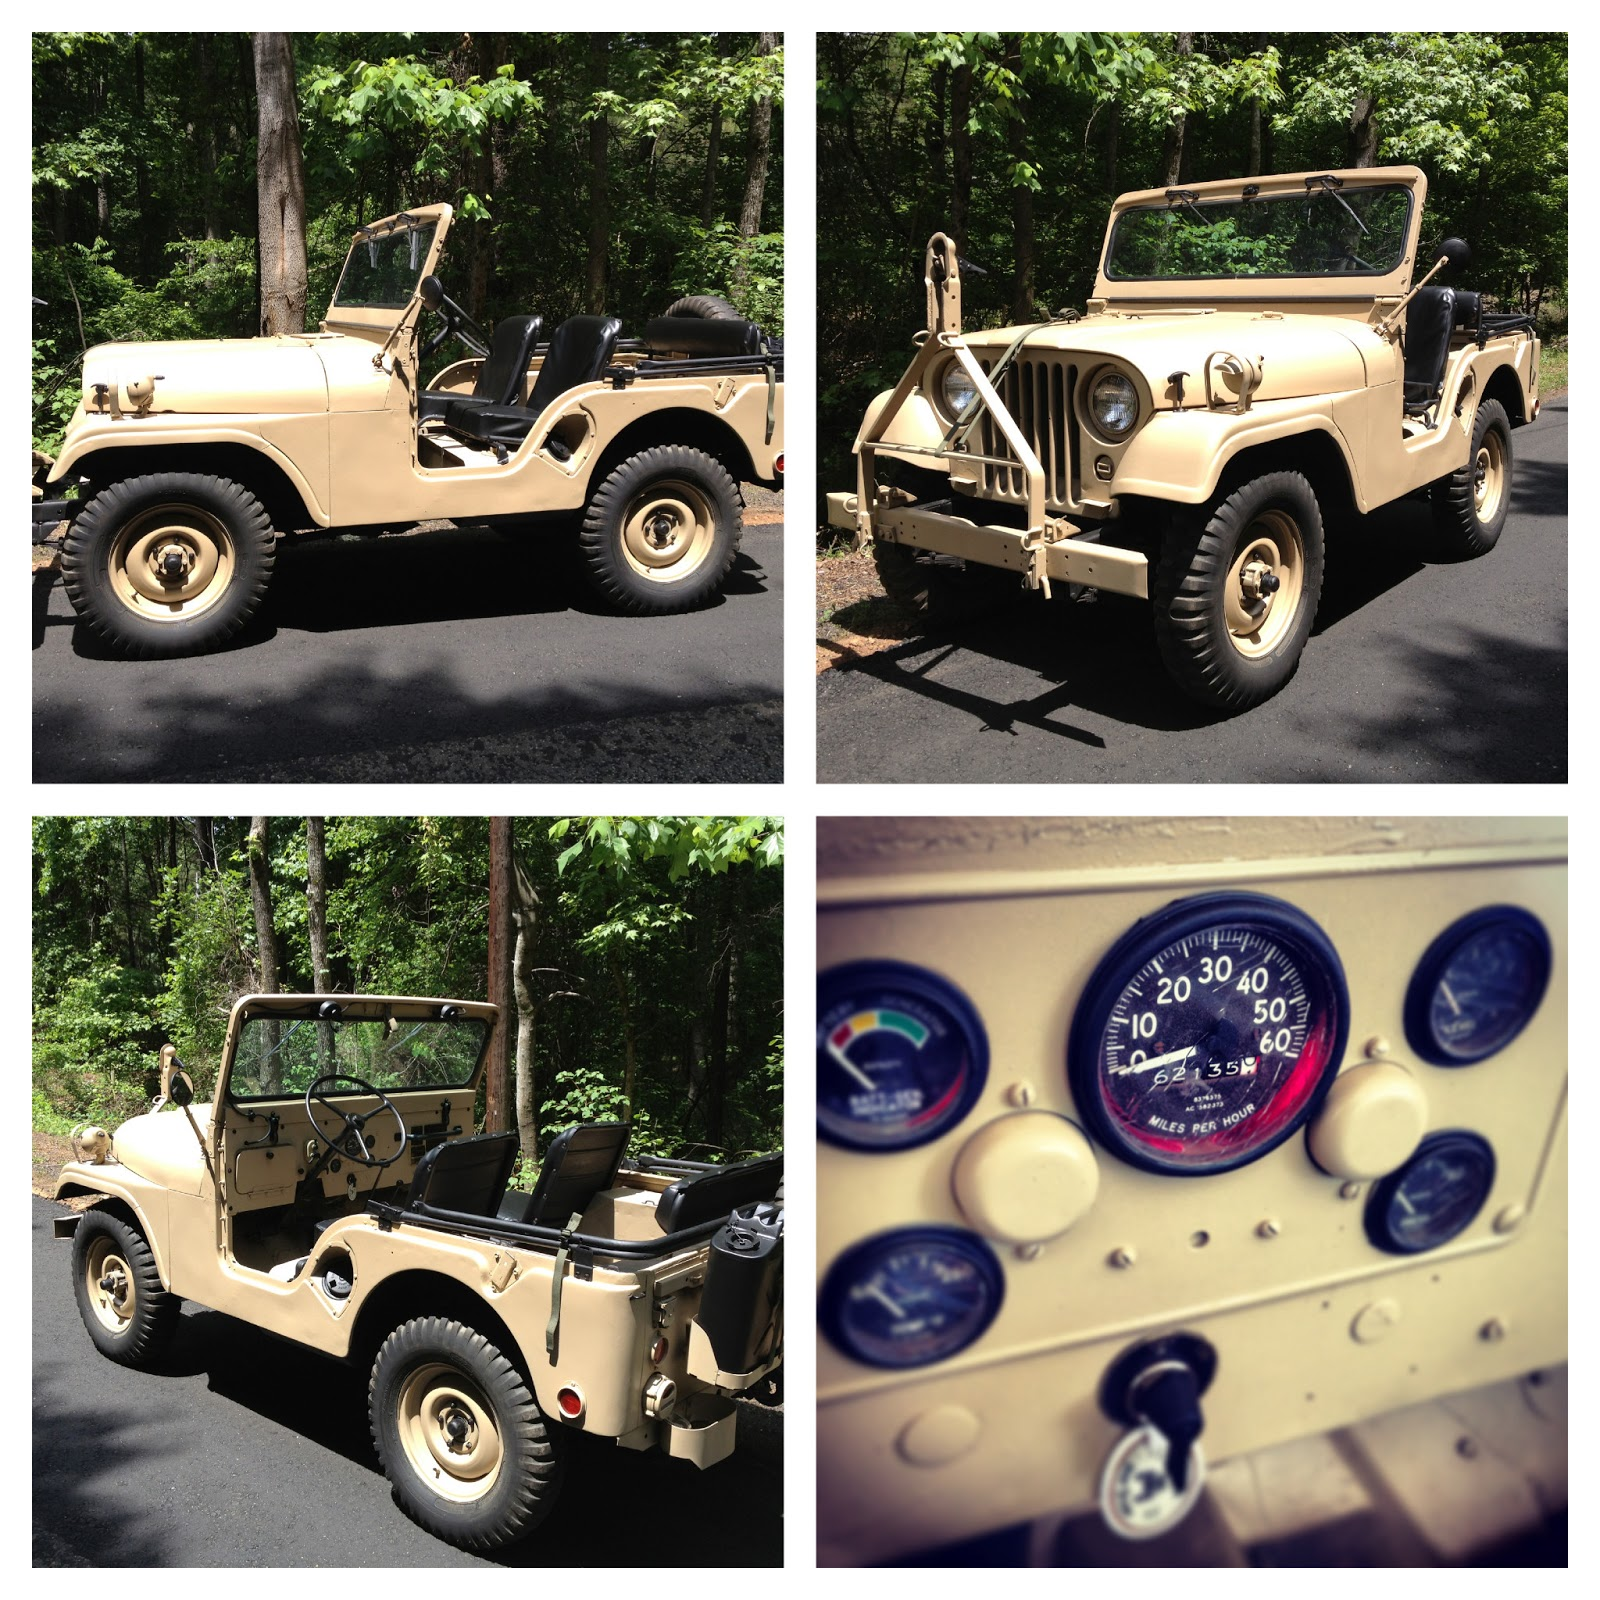 1955 m38a1 us army jeep sarge